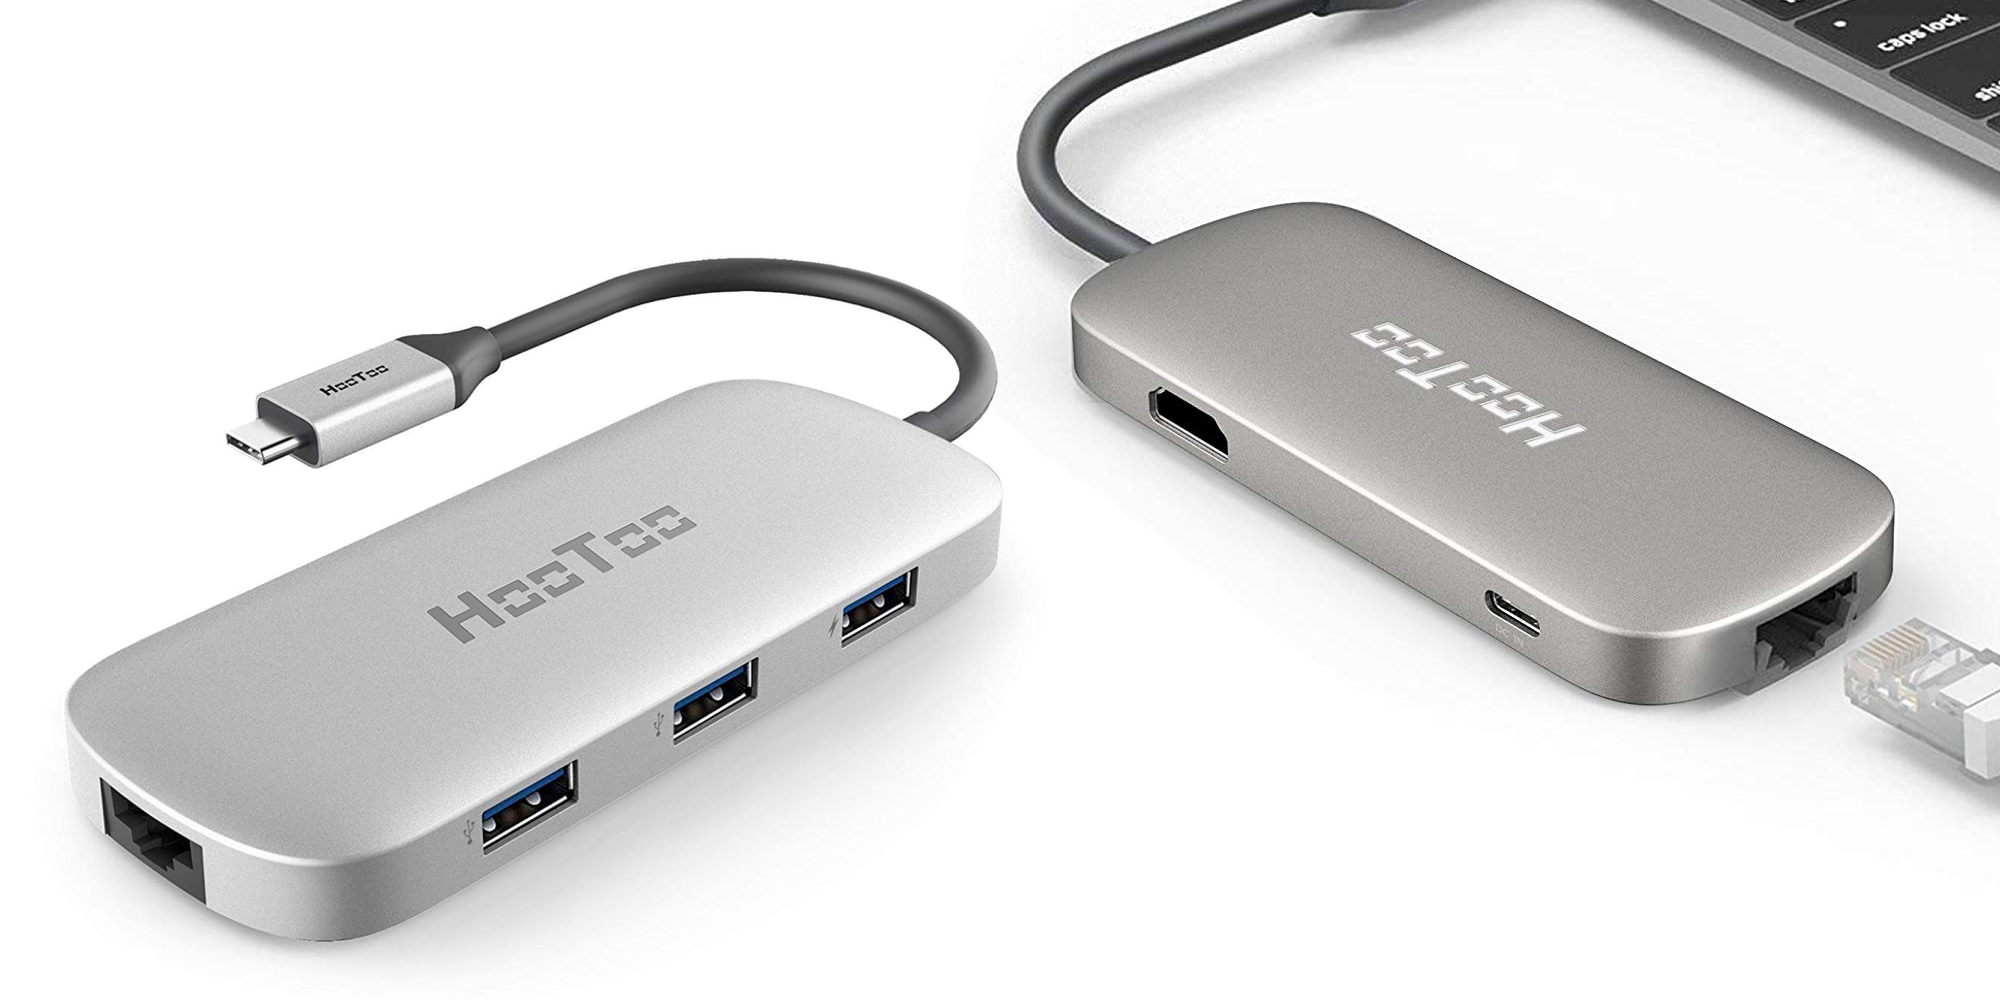 Pair your MacBook w/ this 6-in-1 USB-C Hub features Ethernet and more for $35 (40% off)